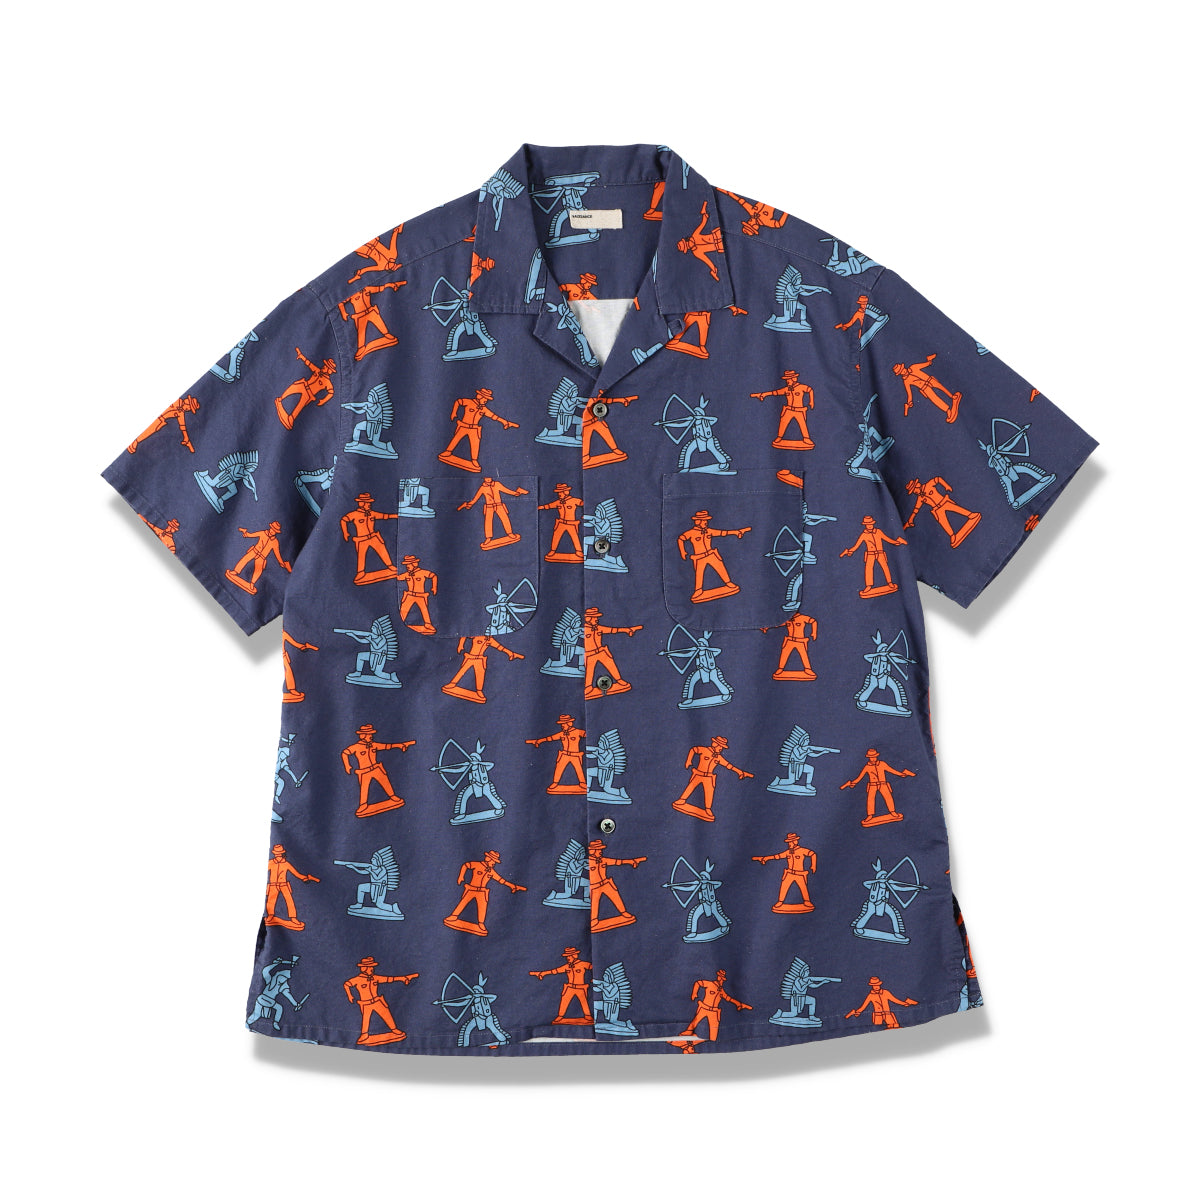 INDIAN COWBOY PRINT HS SHIRT / NAVY (21S-NSA-SH-06)